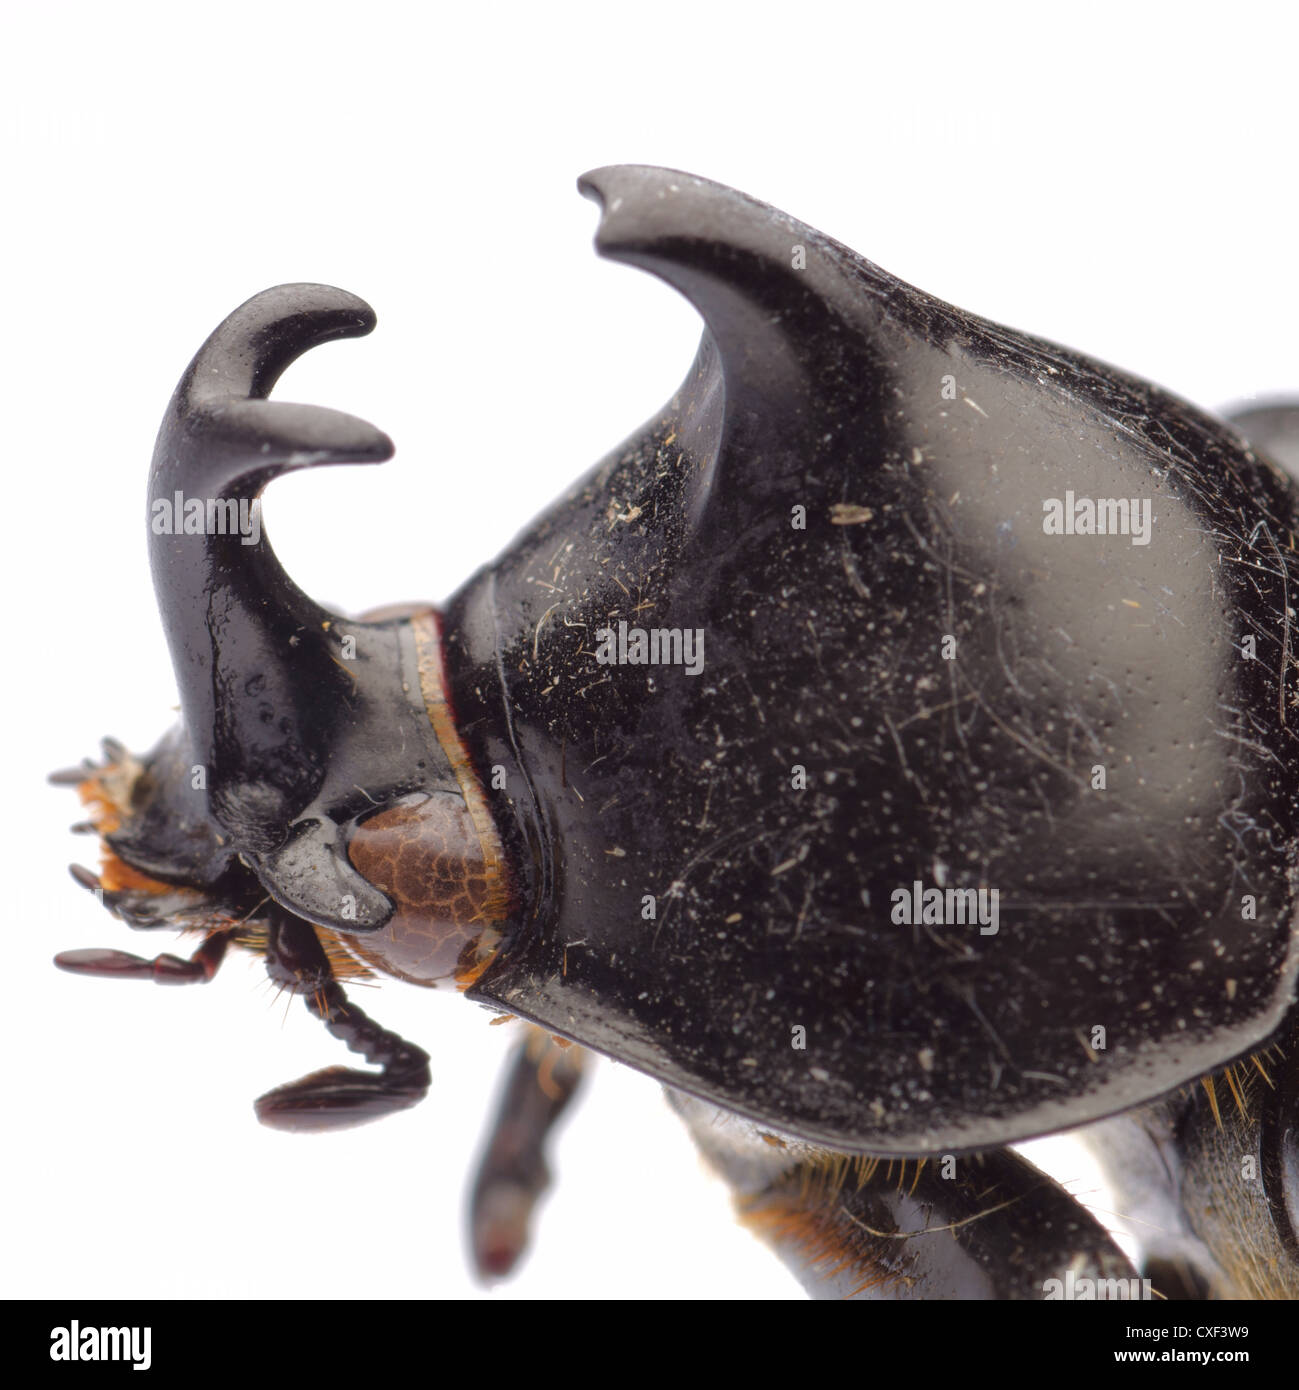 insect giant scarab rhino beetle Xylottrupes gideon isolated - Stock Image